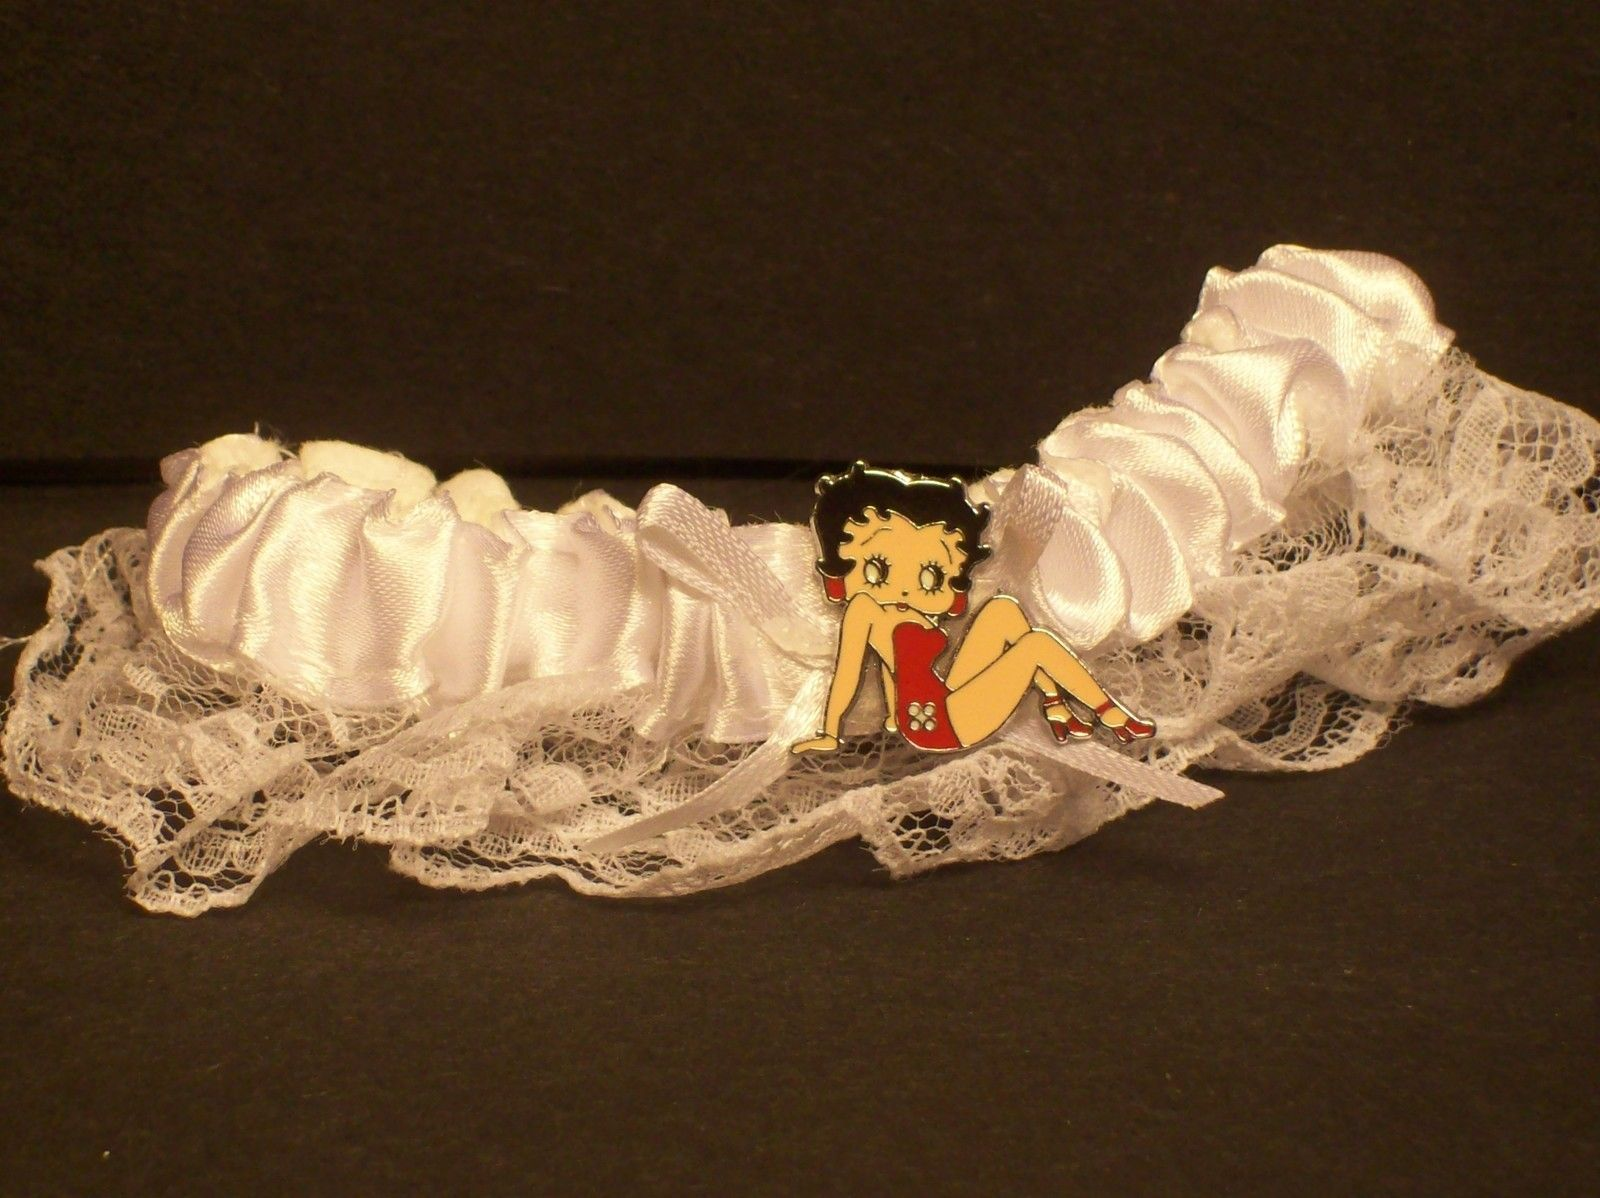 Betty boop red dress garter belt lace wedding bridal toss grooms betty boop red dress garter belt lace wedding bridal toss grooms arm funny geotapseo Image collections